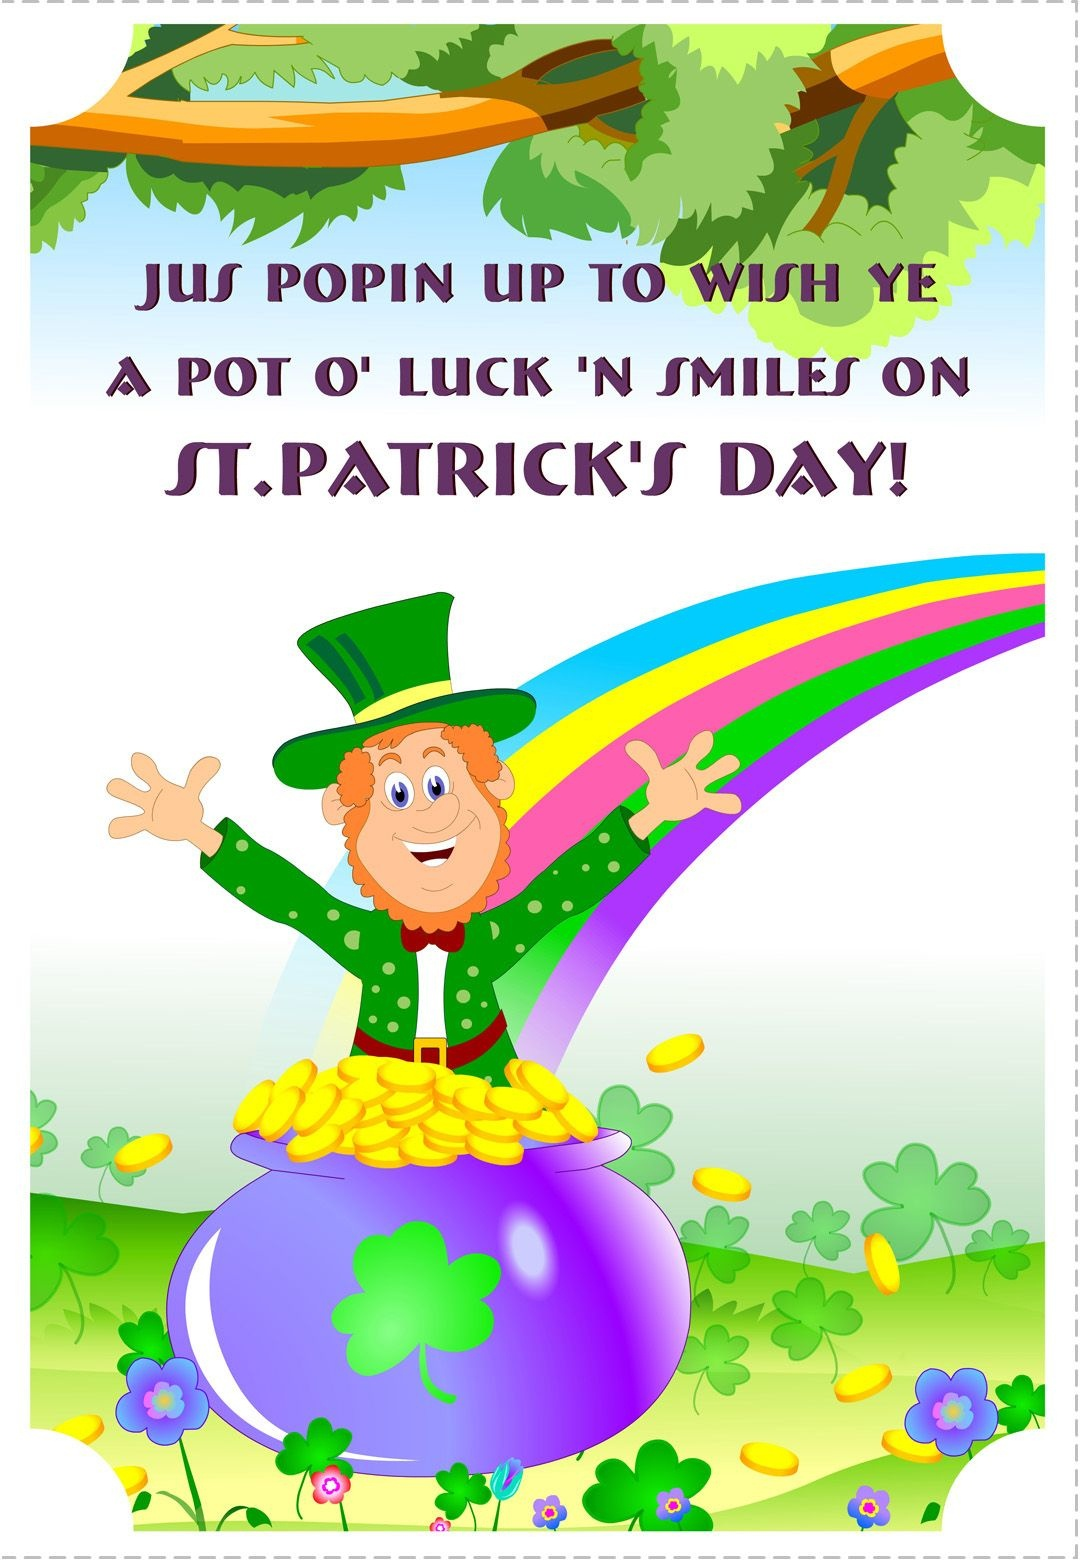 Free Printable A Pot Of Luck St Patrick's Greeting Card | Printable - Free Printable St Patrick's Day Greeting Cards